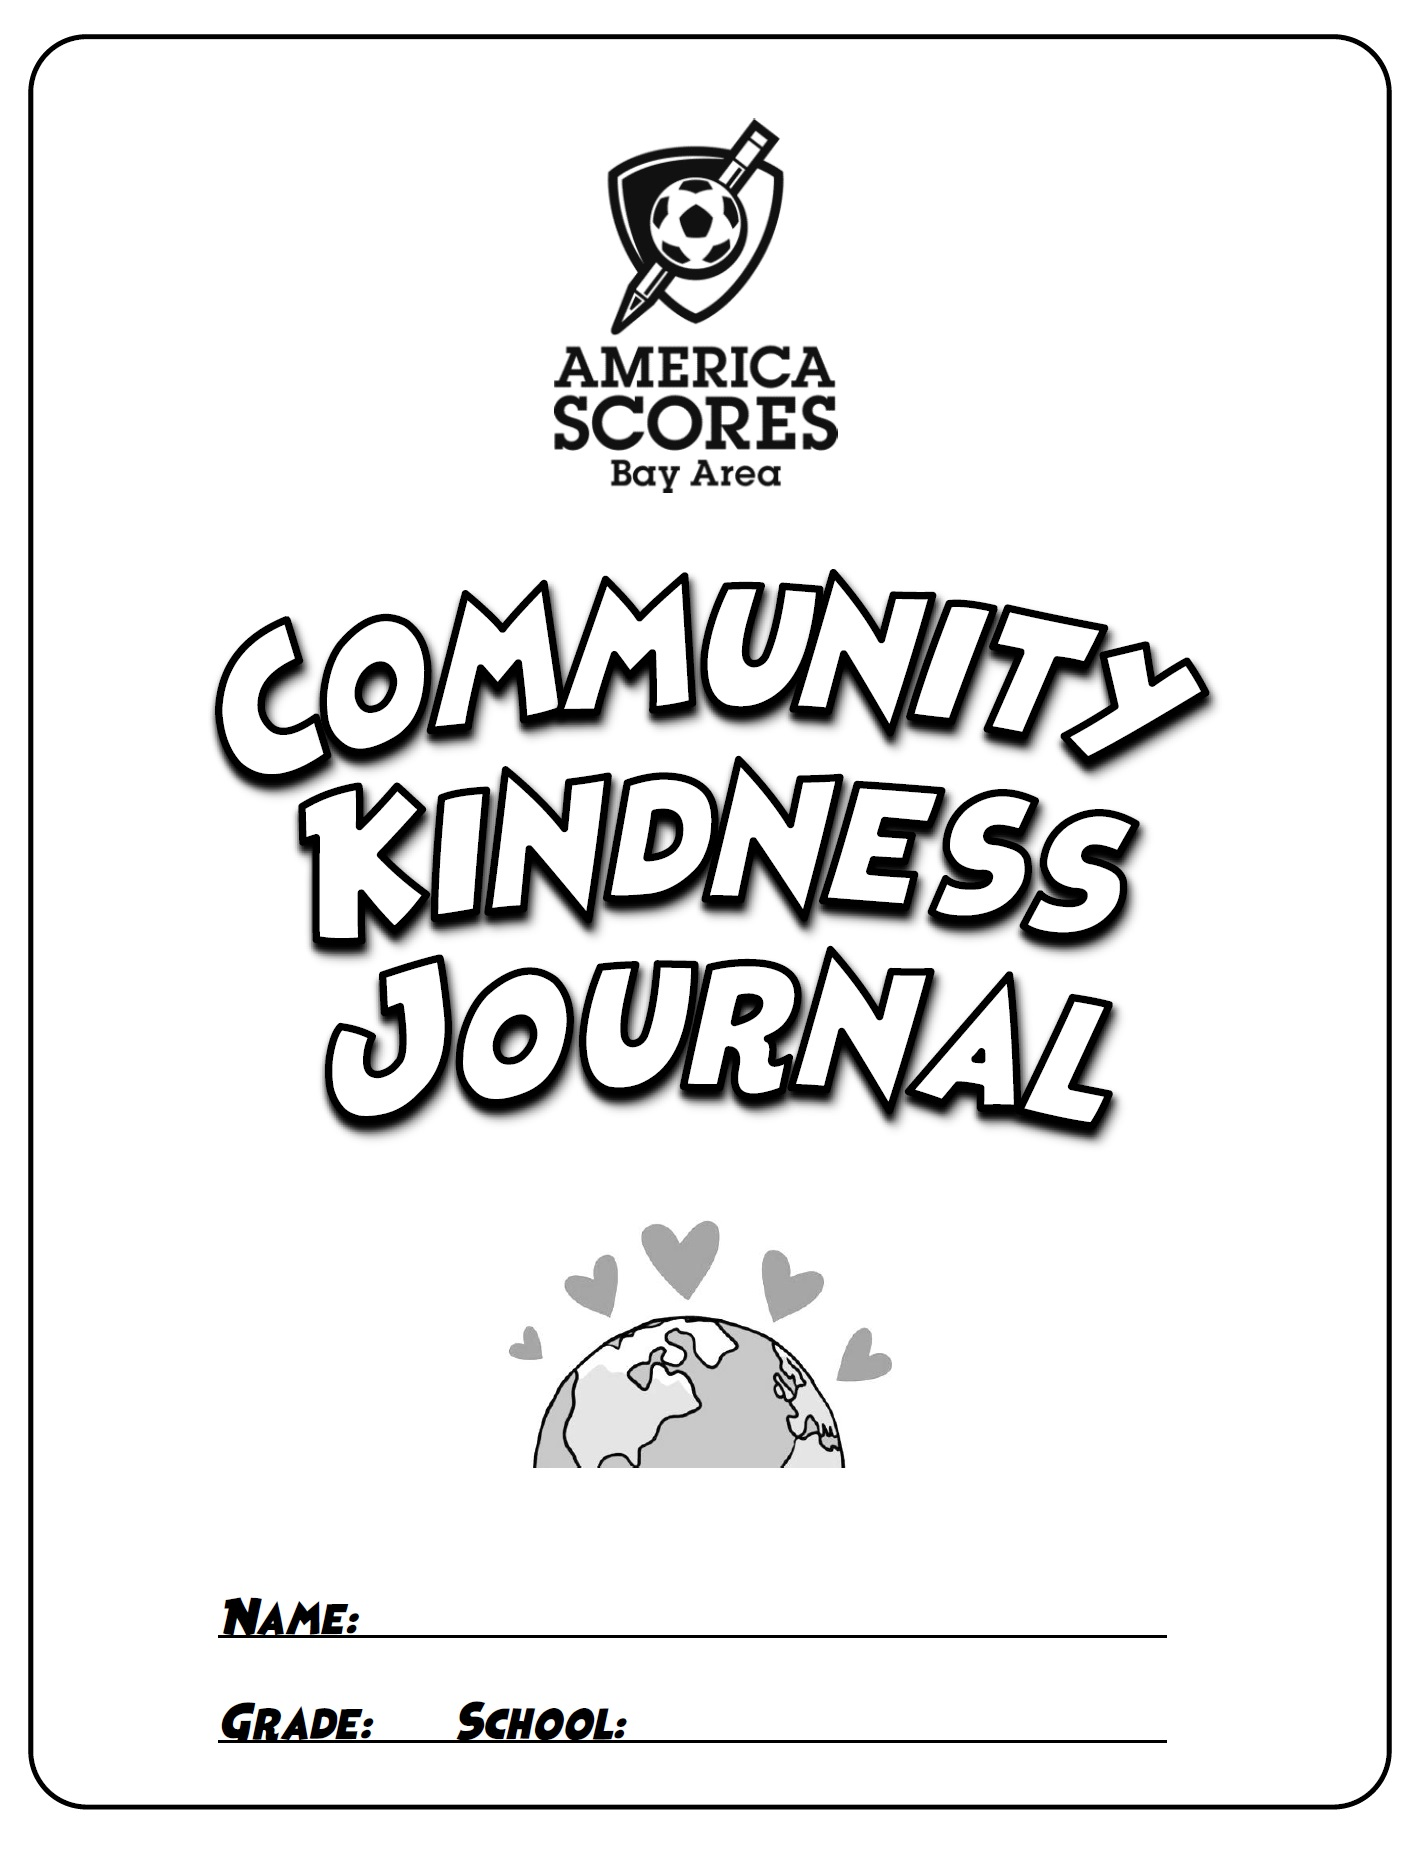 View or download the Community Kindness Journal workbook (1st-5th Grade)